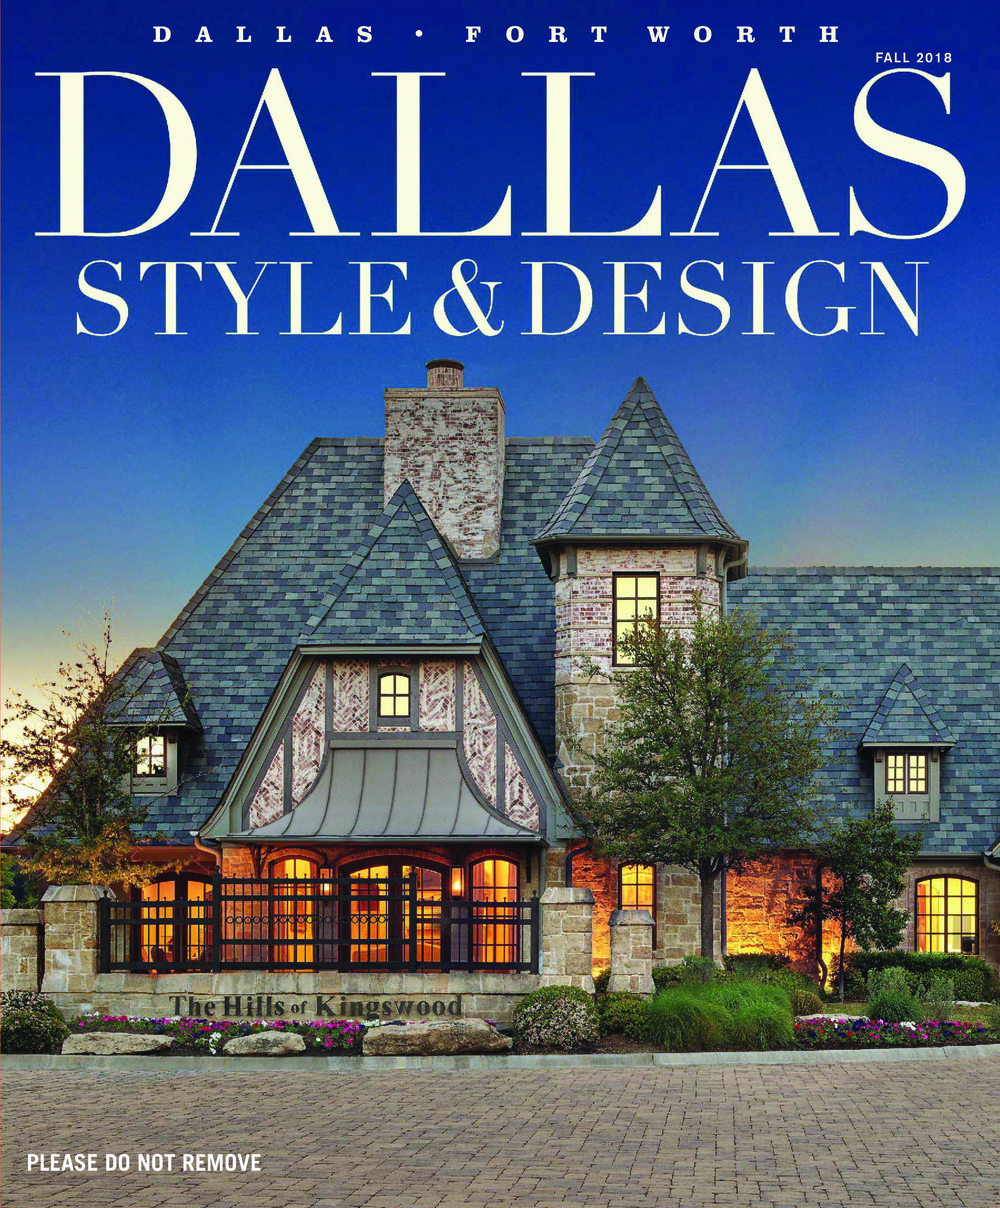 Dallas Style and Design Cover Fall 2018.jpg